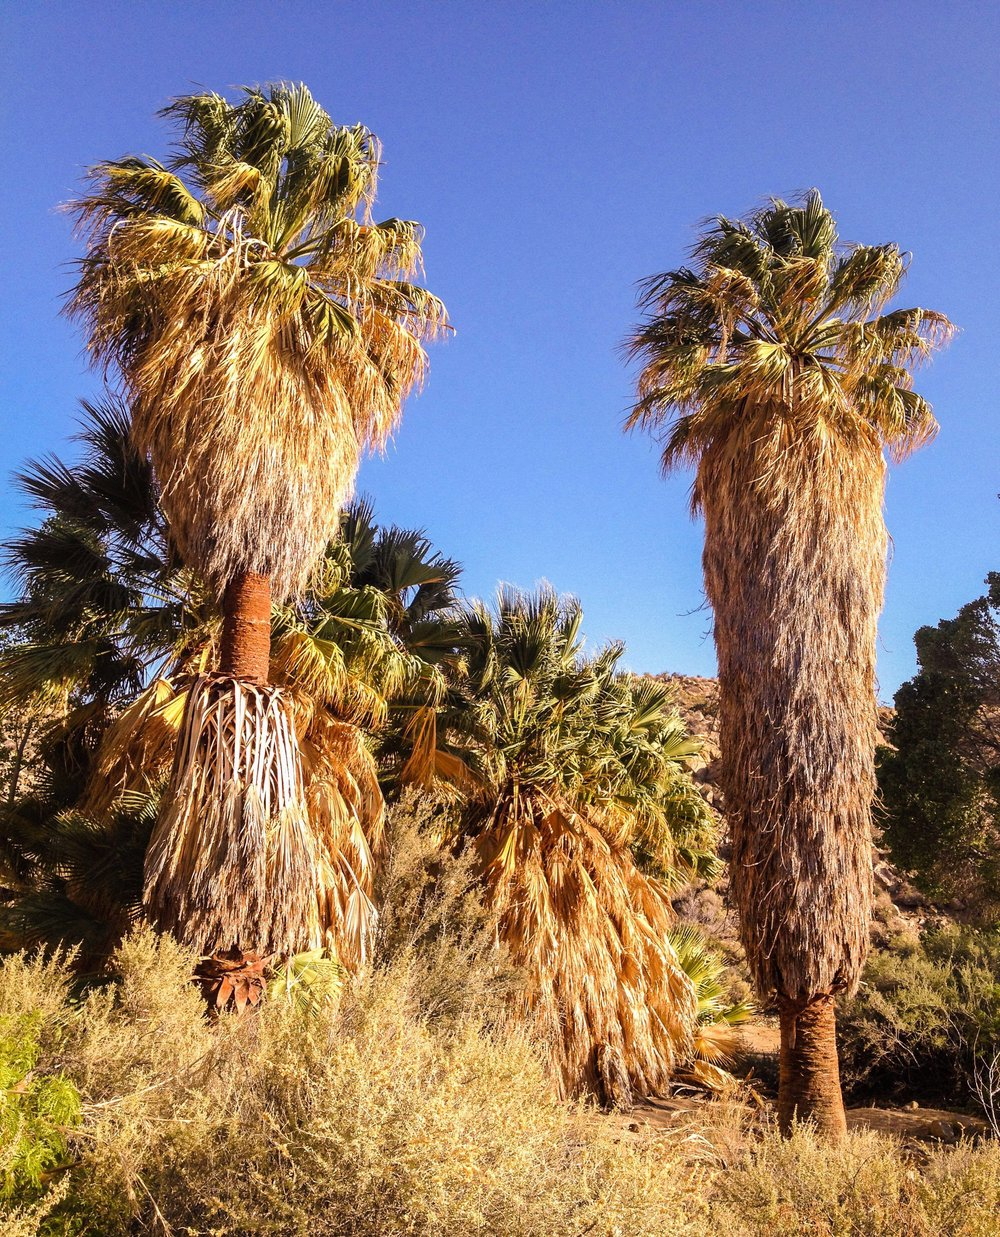 The desert fan palm oasis at Cottonwood Springs